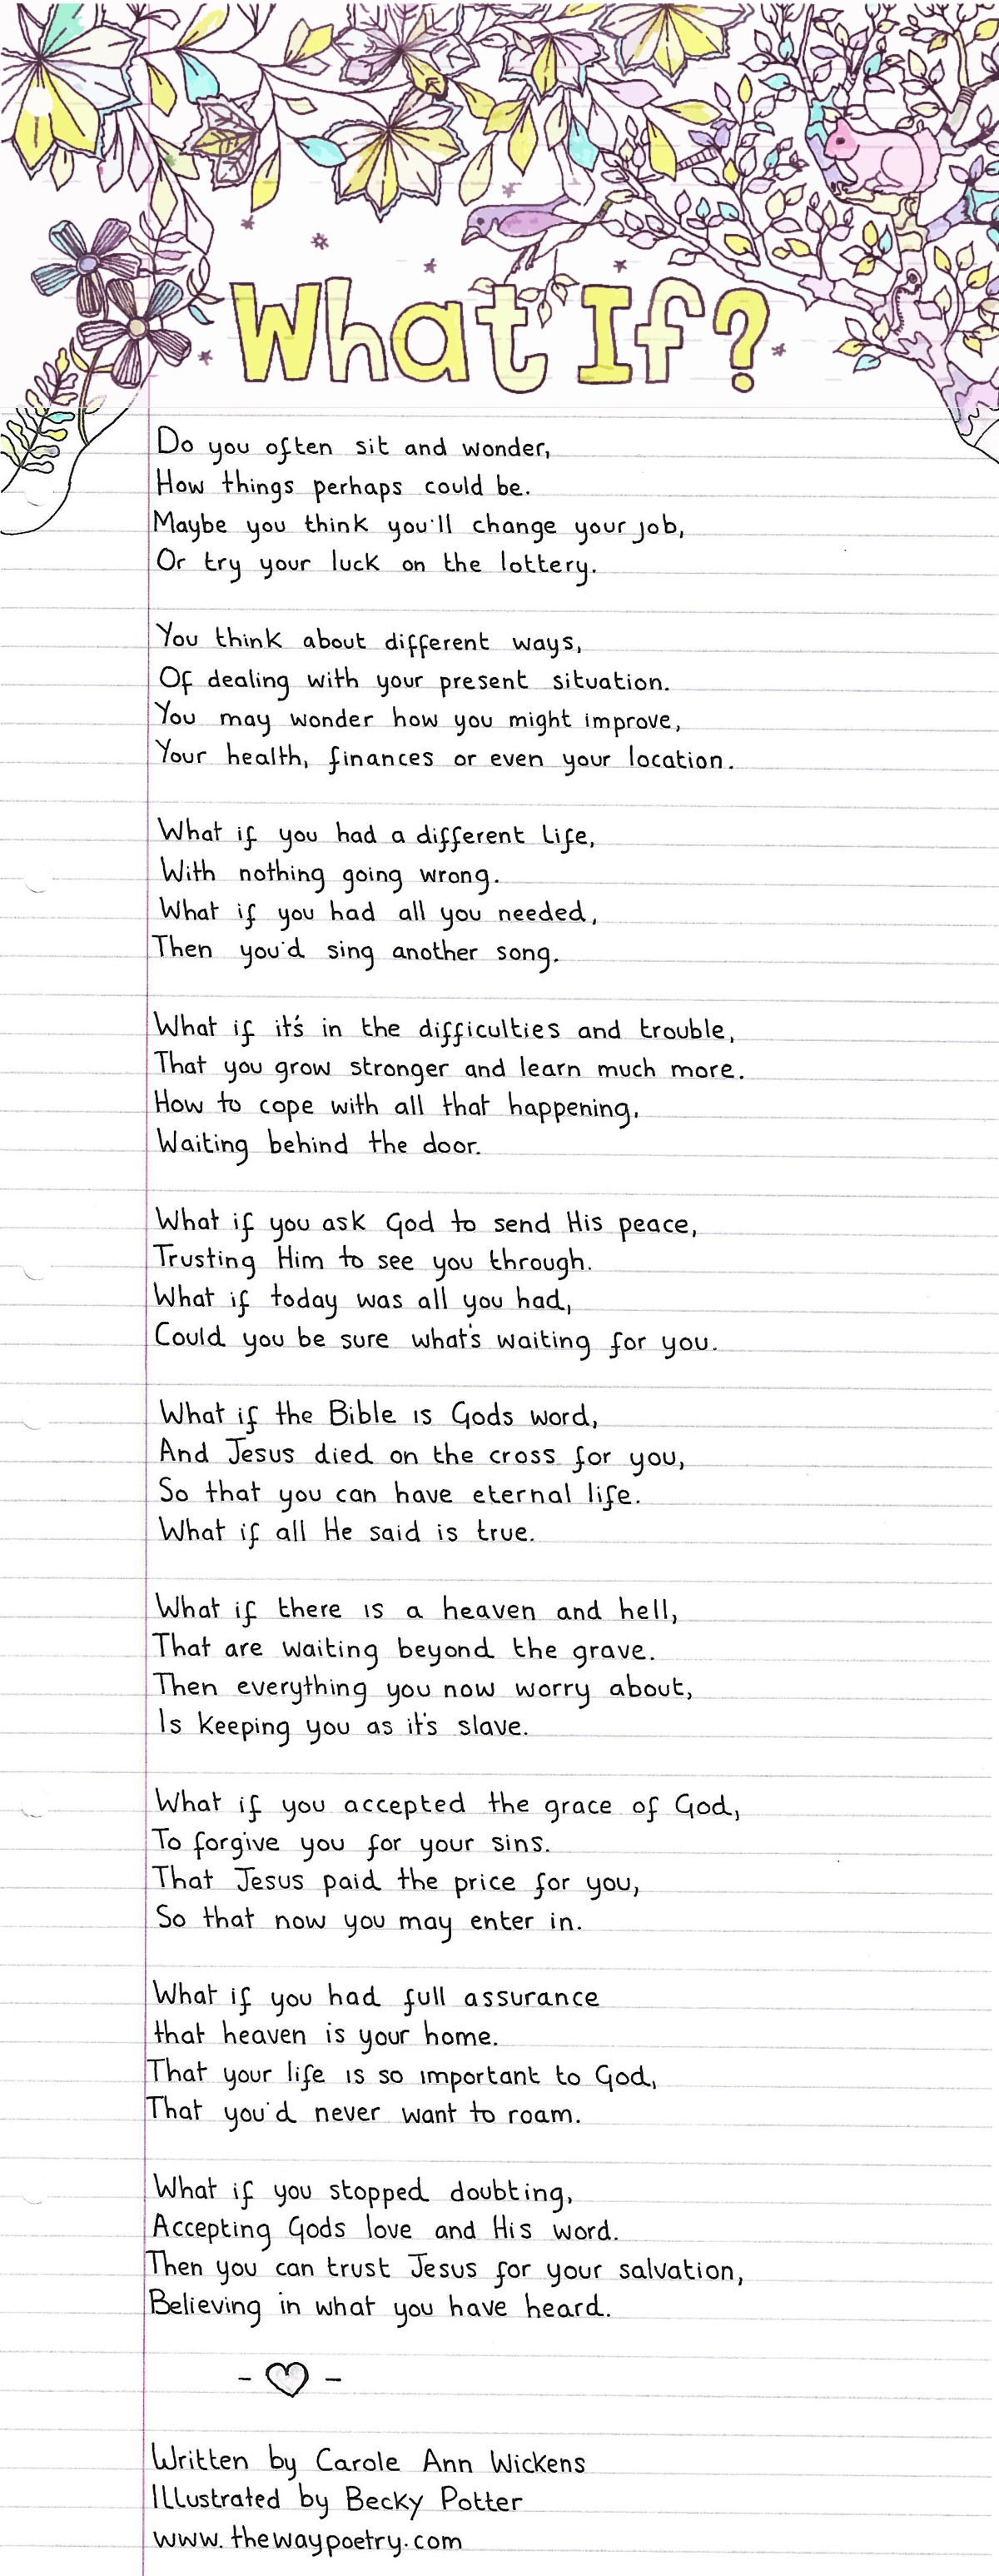 What If? by Carole Ann Wickens